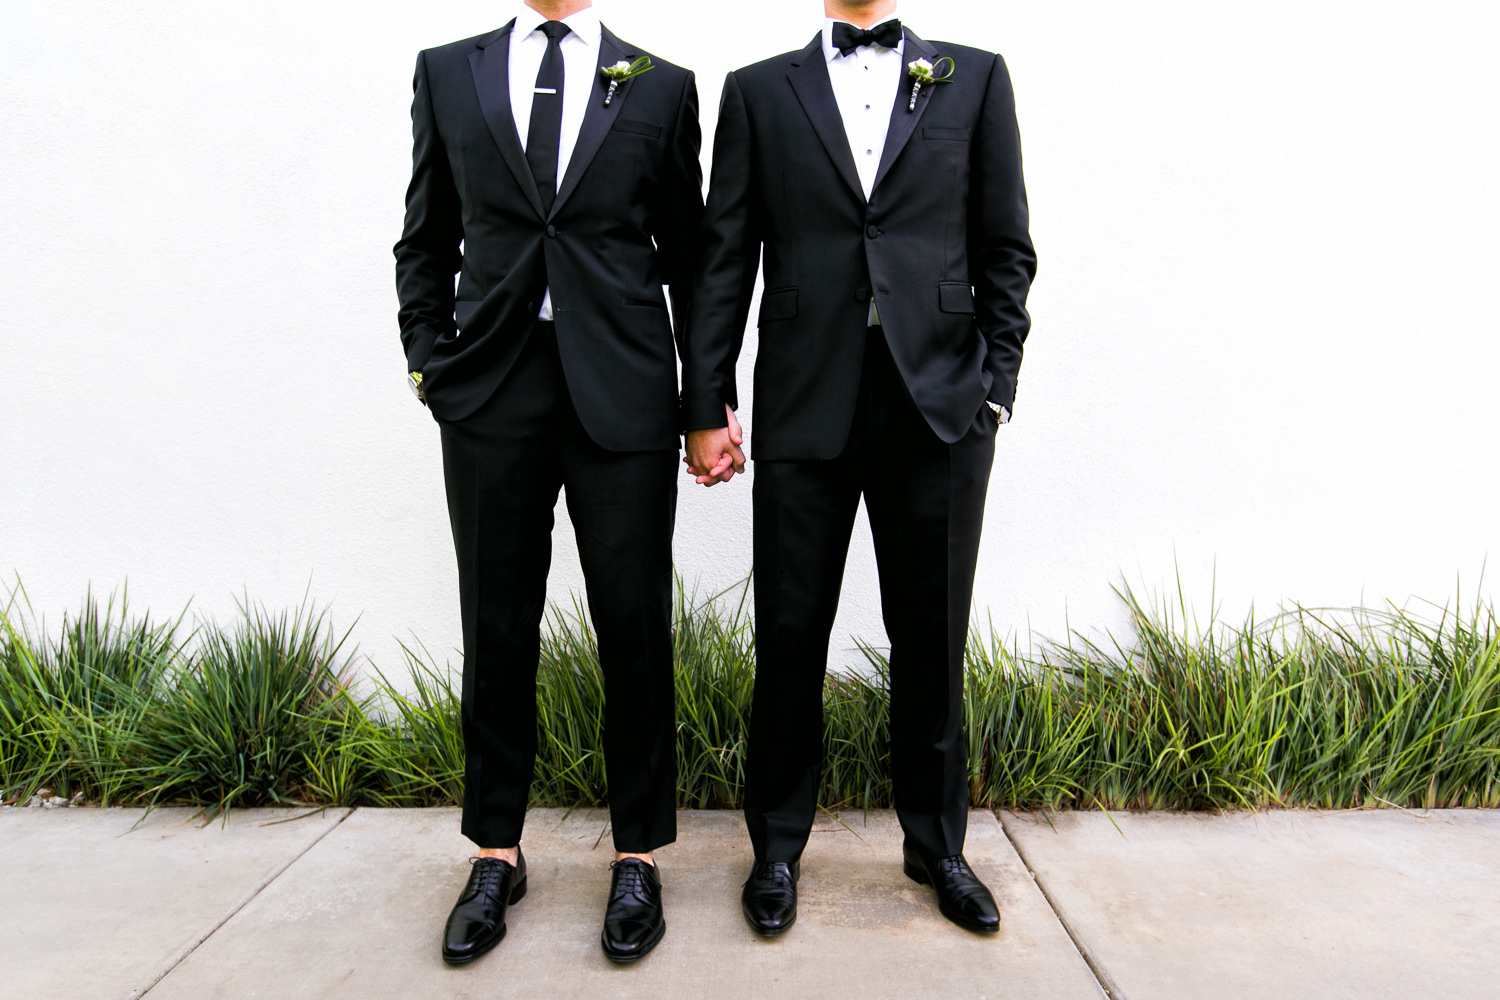 Same Sex Avalon Palm Springs Wedding - Great Suits Together Holding Hands